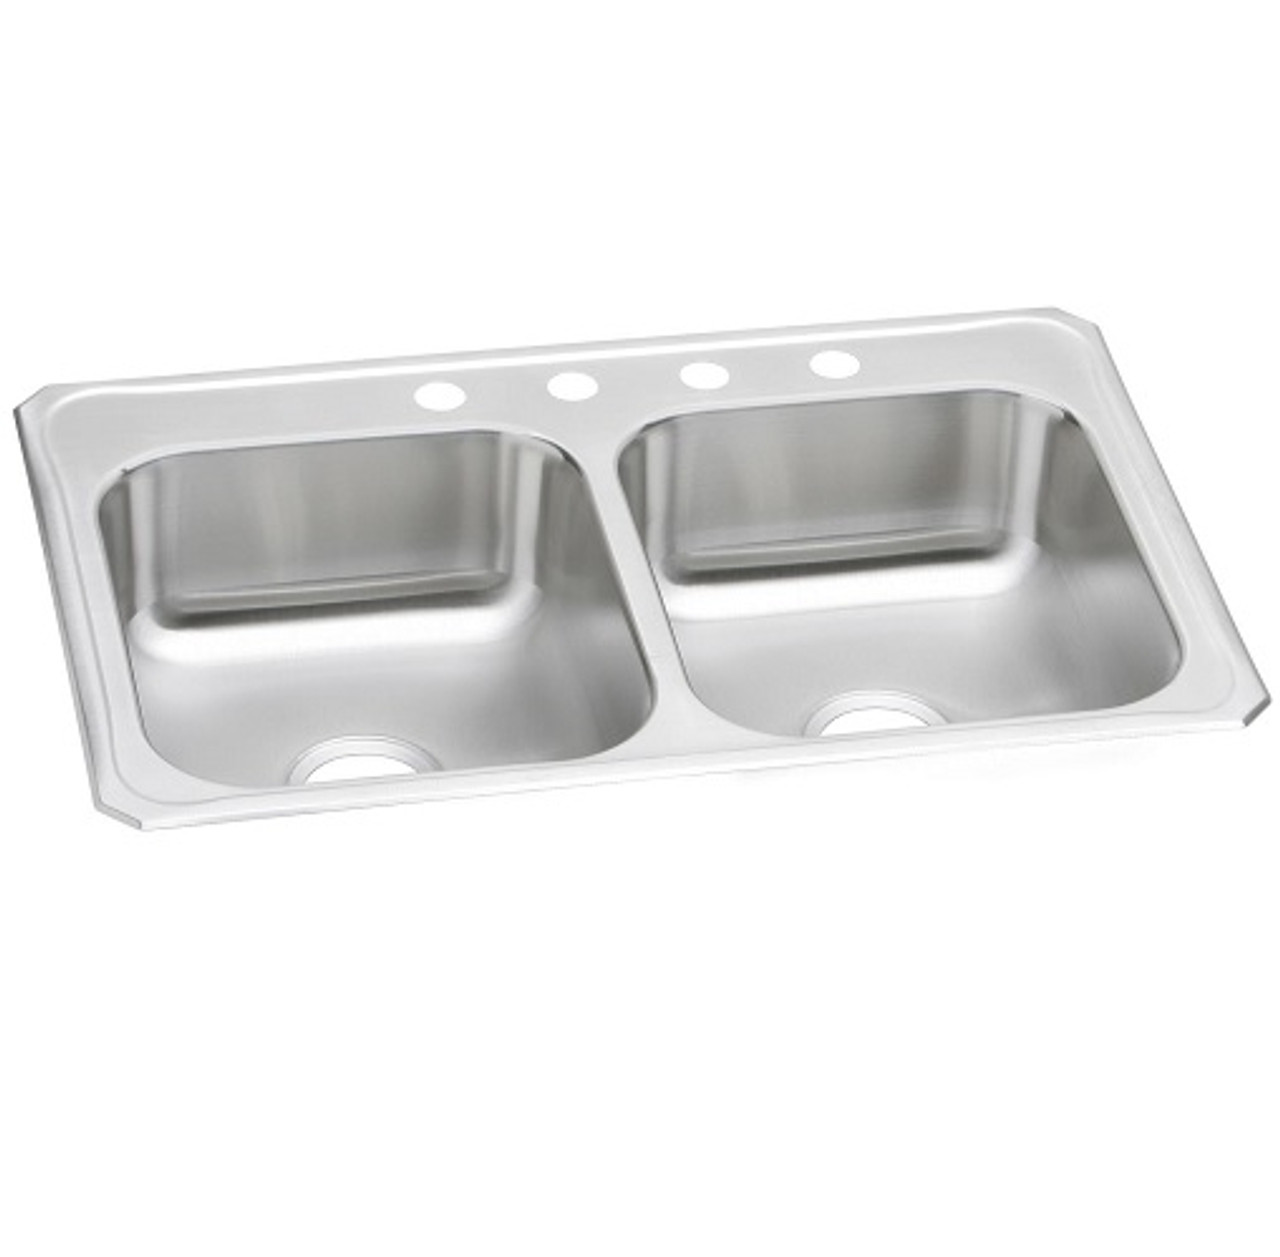 elkay cr3322 celebrity stainless steel 33 x 22 x 7 equal double bowl drop in sink